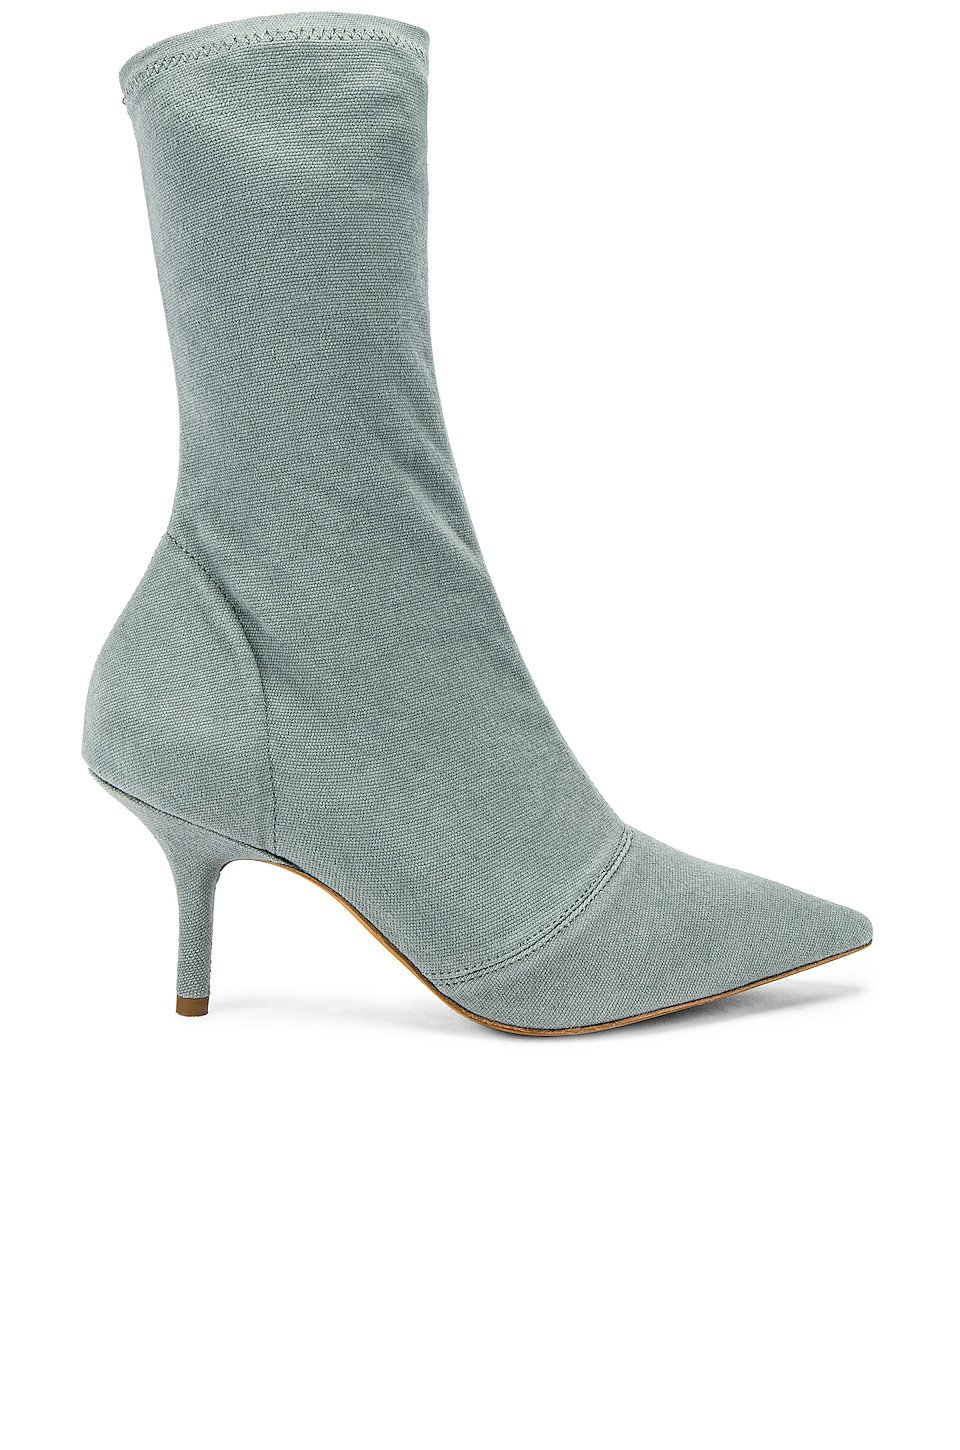 SEASON 8 Stretch Ankle Boot